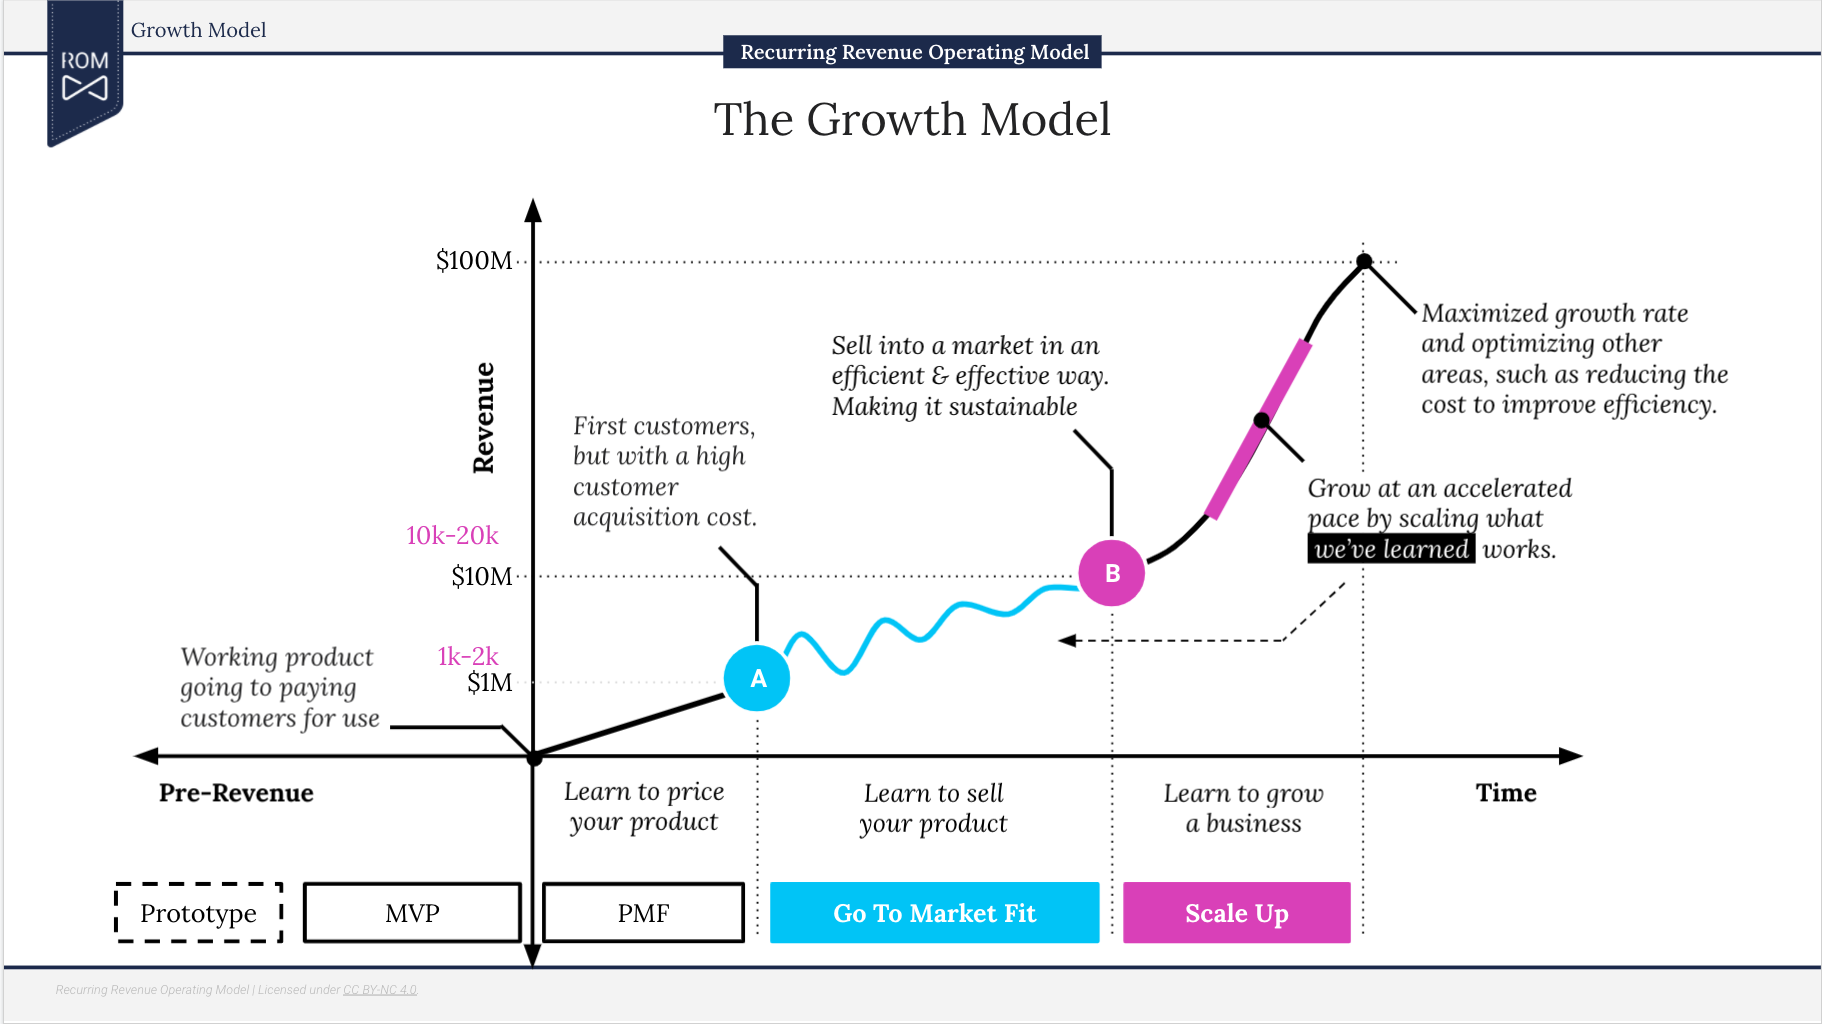 The ROM Growth Model